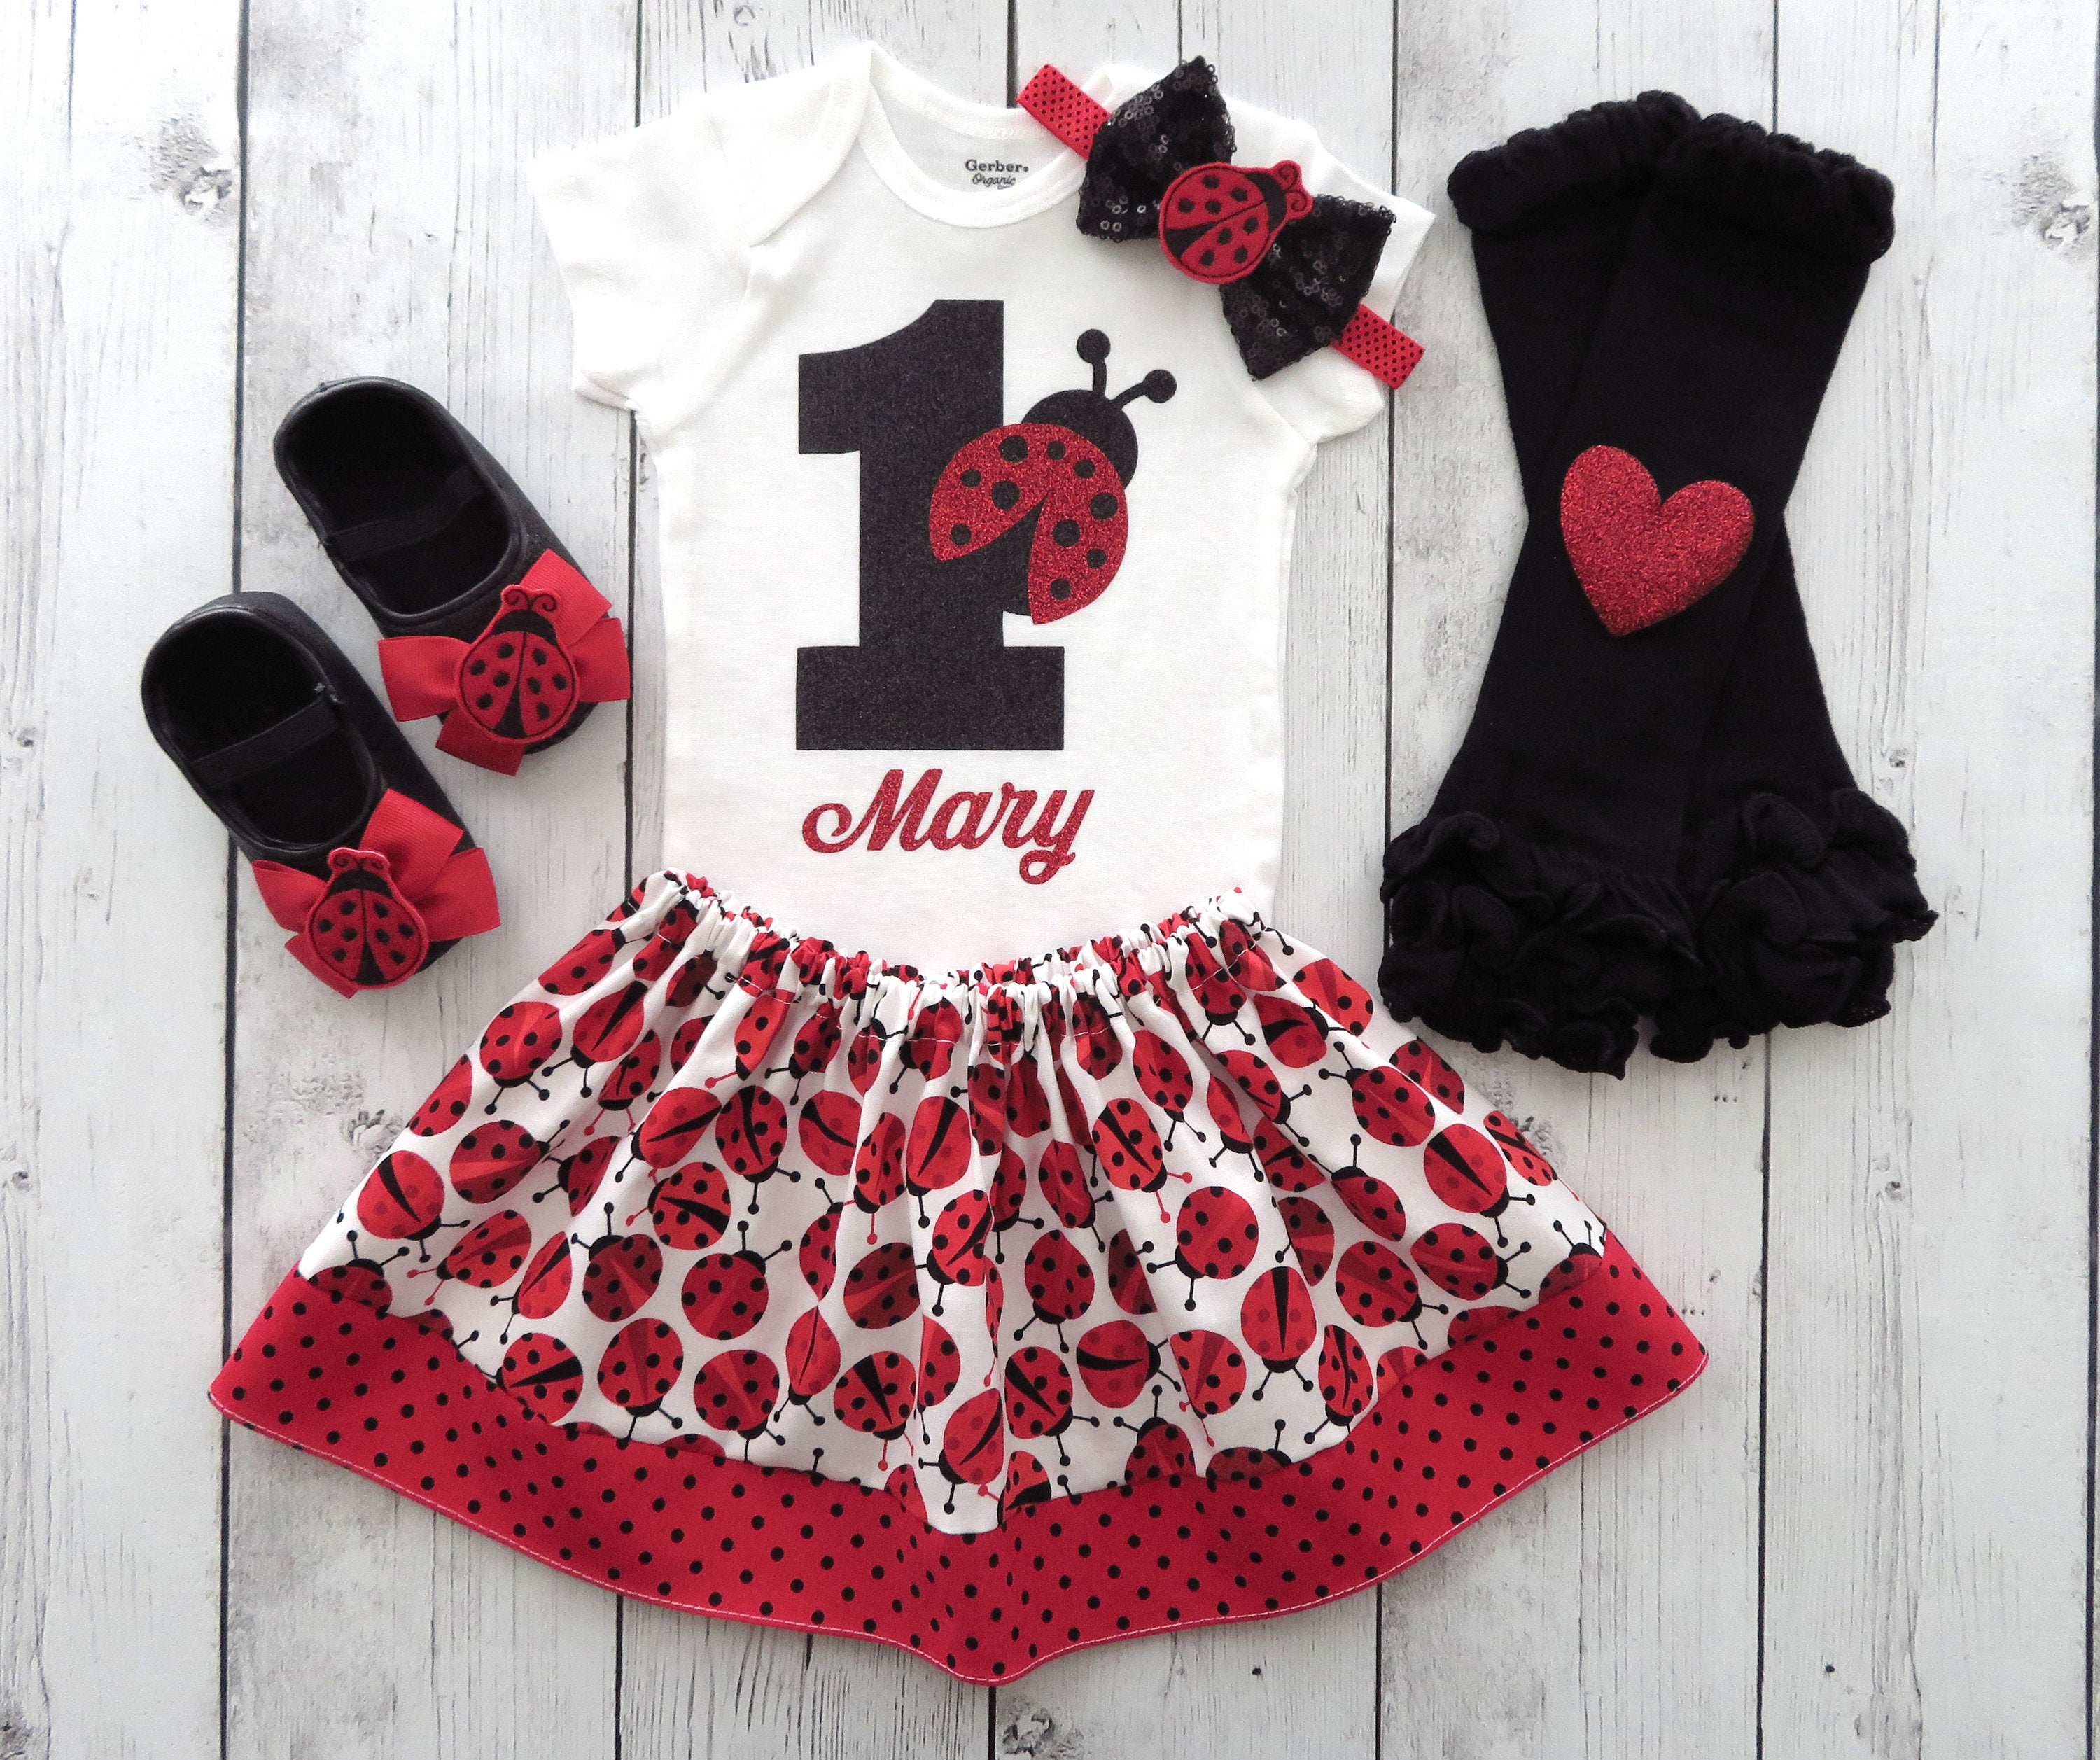 Ladybug First Birthday Outfit - girl 1st birthday outfit, red black, ladybug headband, ladybug 1st birthday, 1st bday outfit,